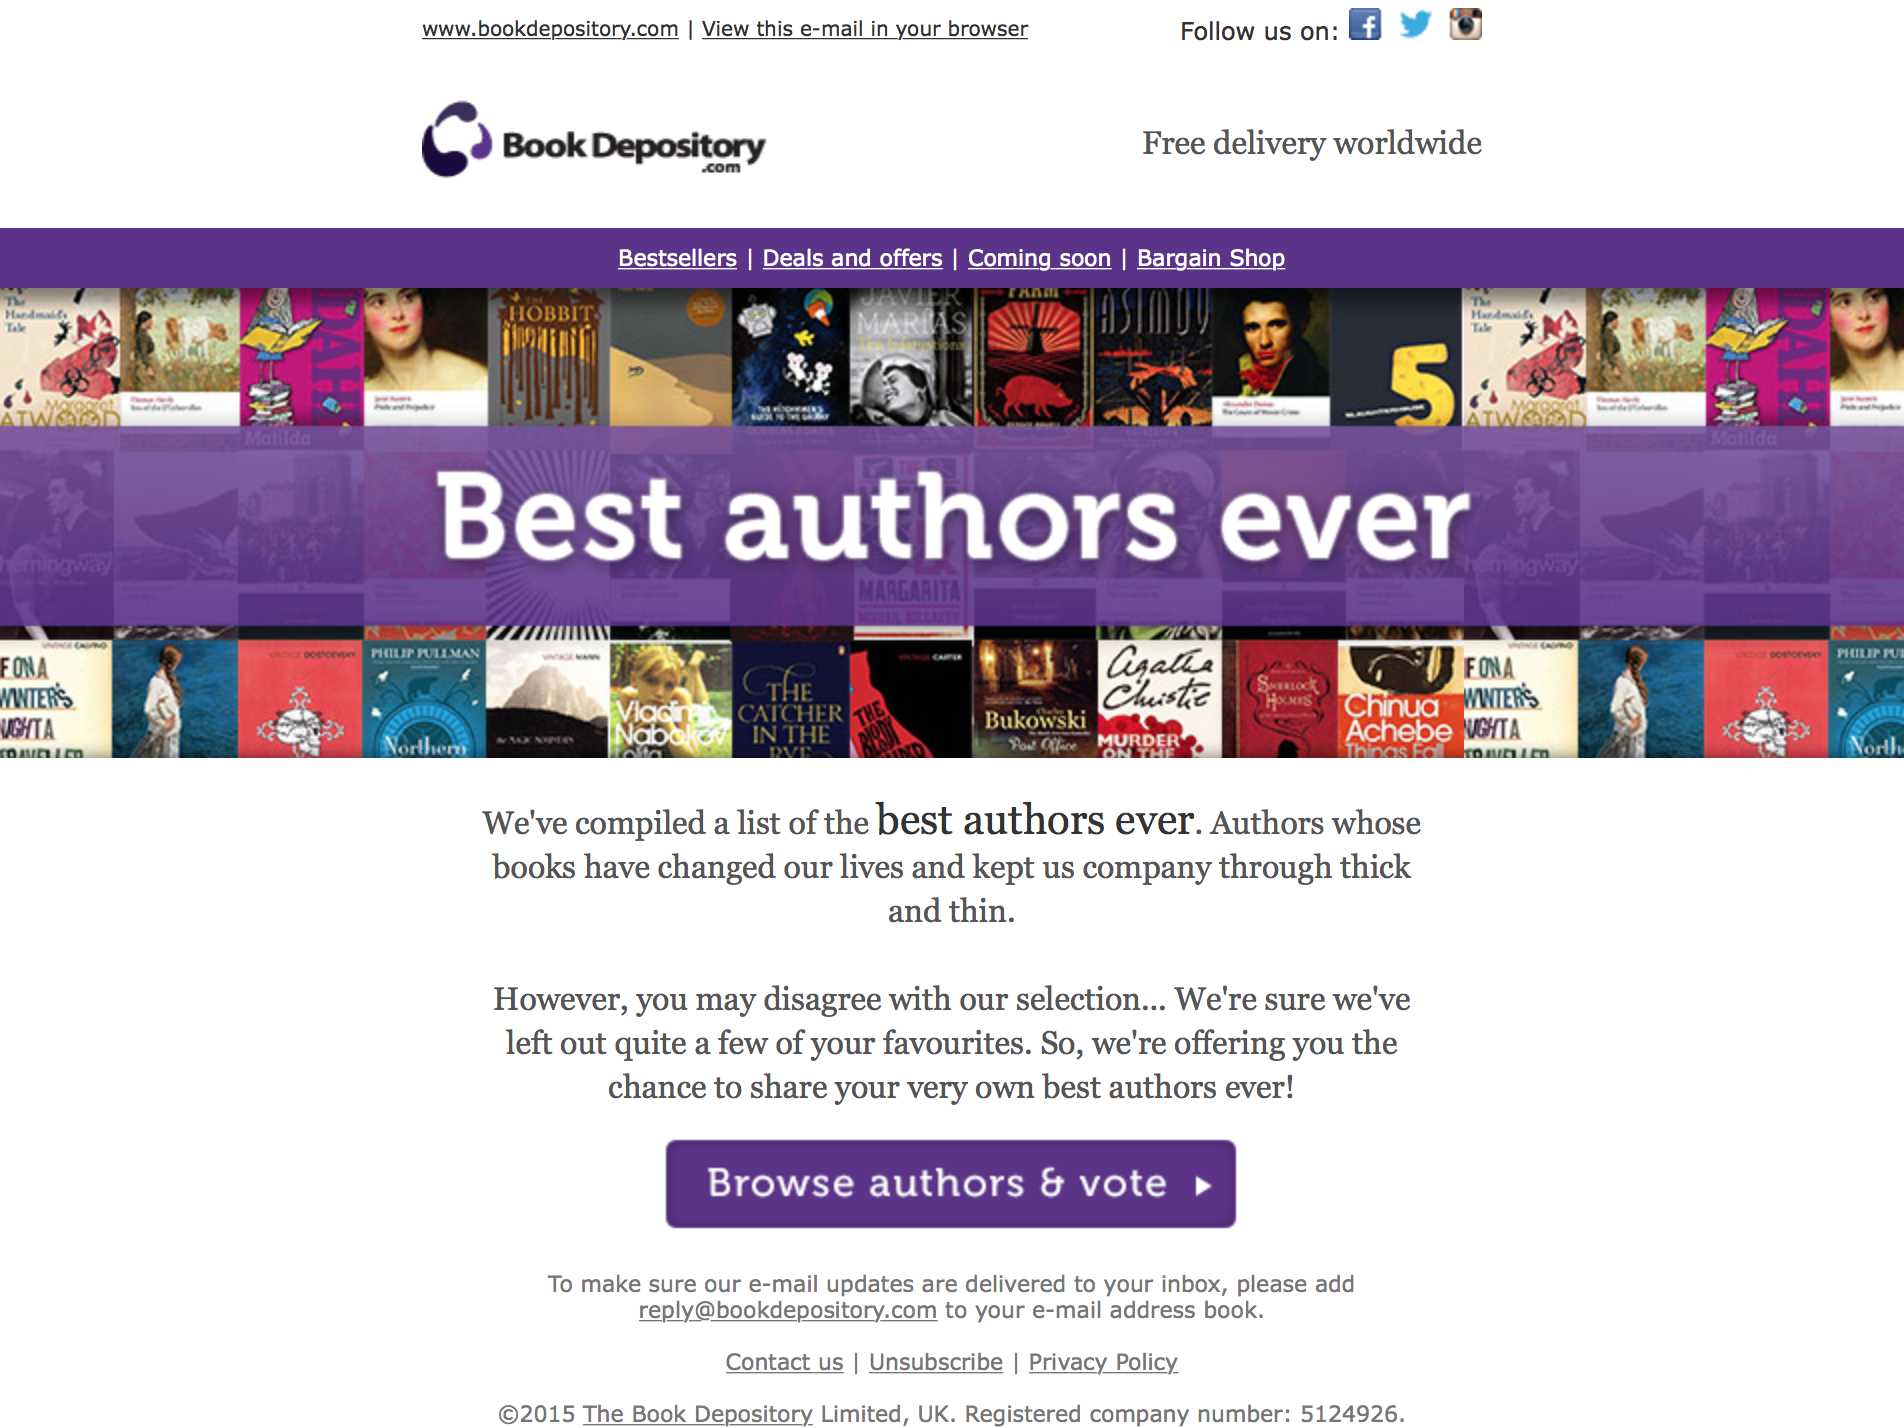 Best Authors email